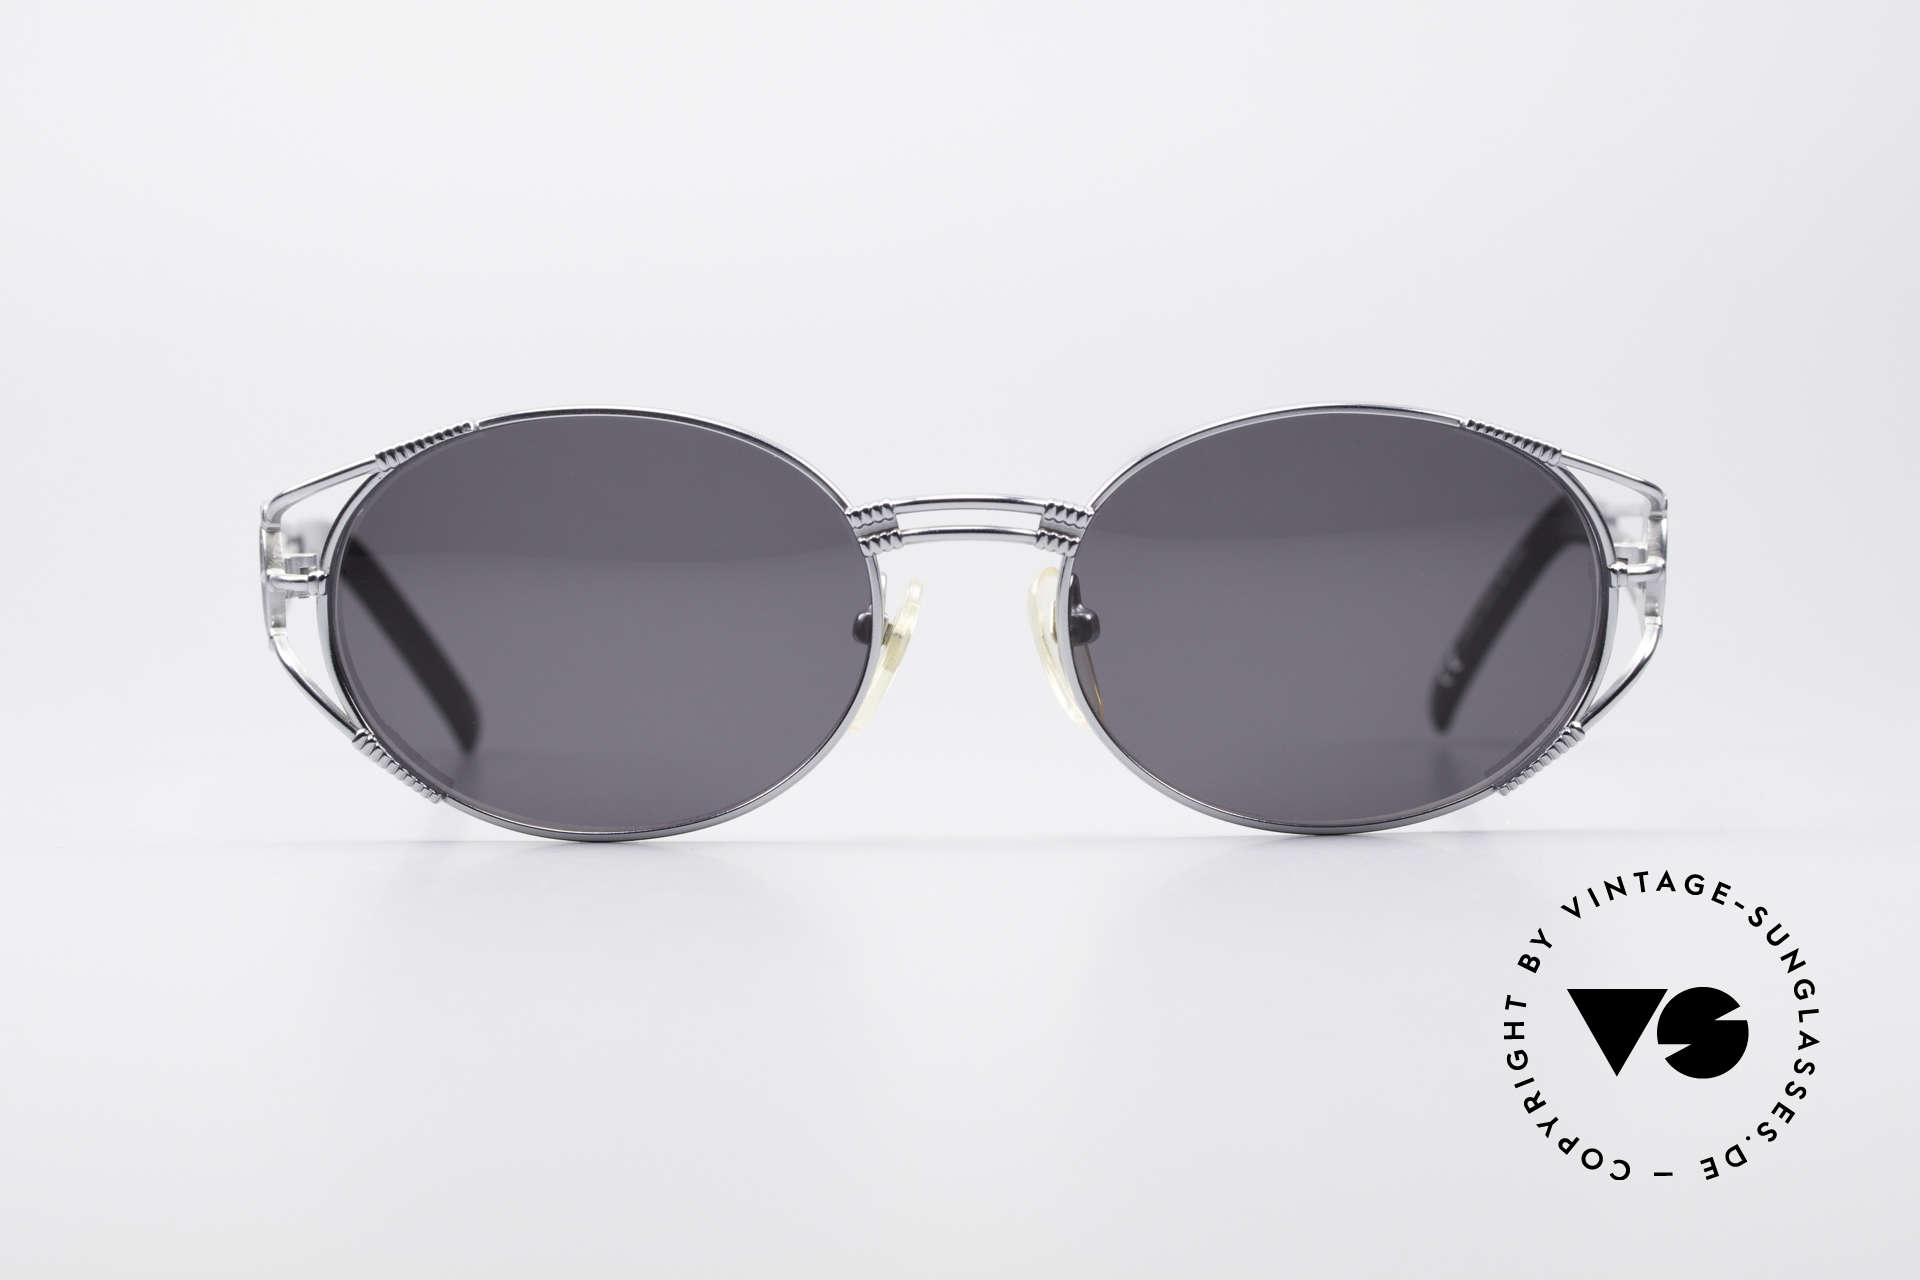 Jean Paul Gaultier 58-5106 Oval JPG Steampunk Shades, JPG sunglasses from 1997 with shiny silver finish, Made for Men and Women